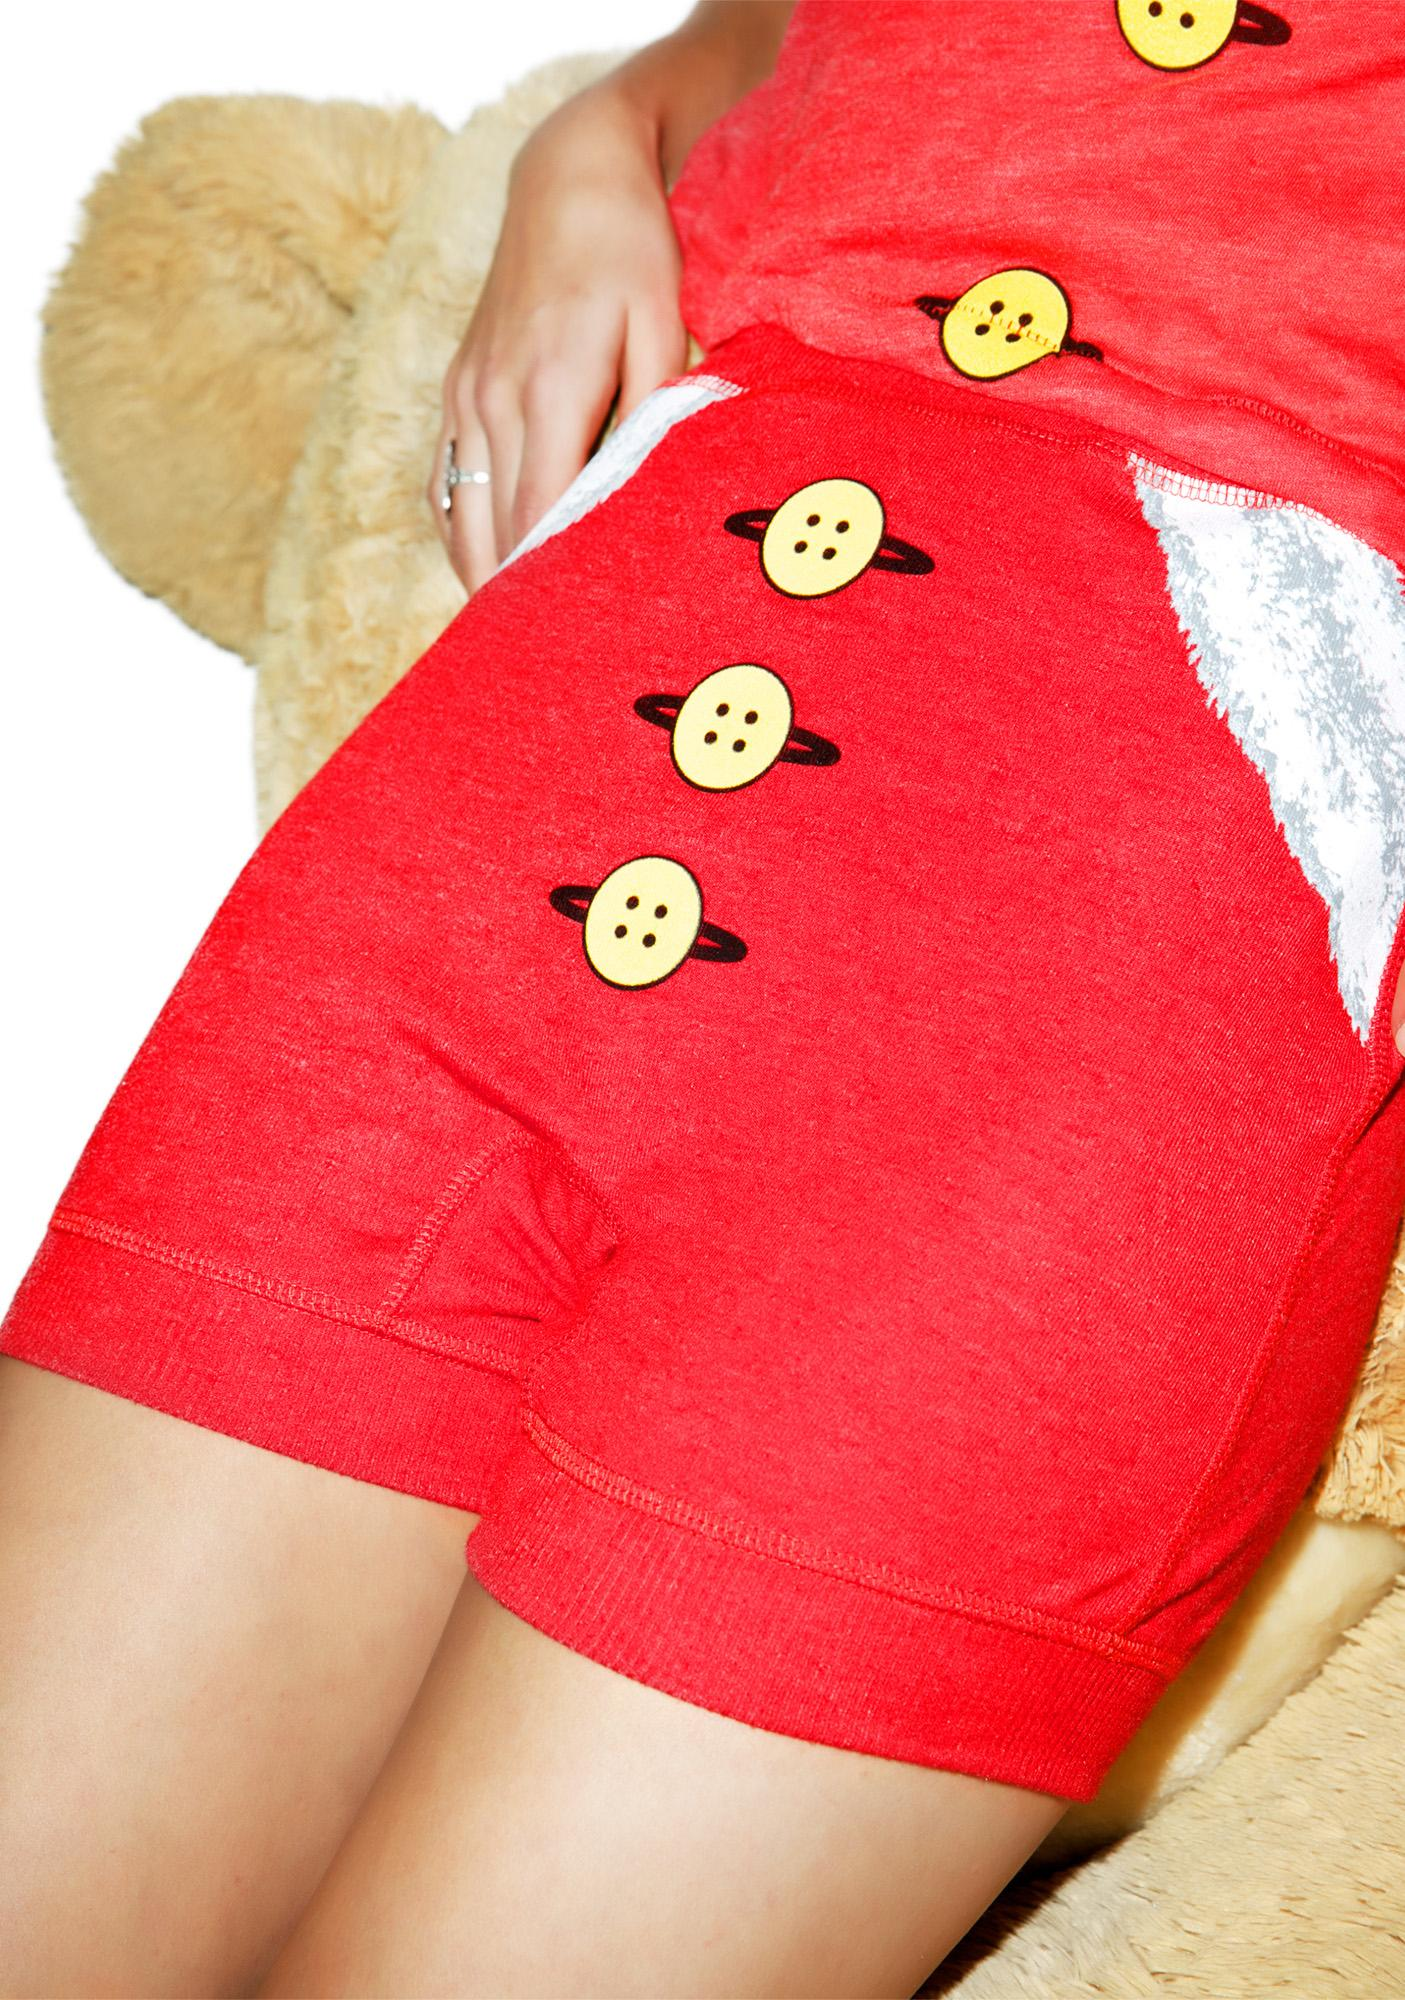 Wildfox Couture Mrs. Claus Verona Boxers